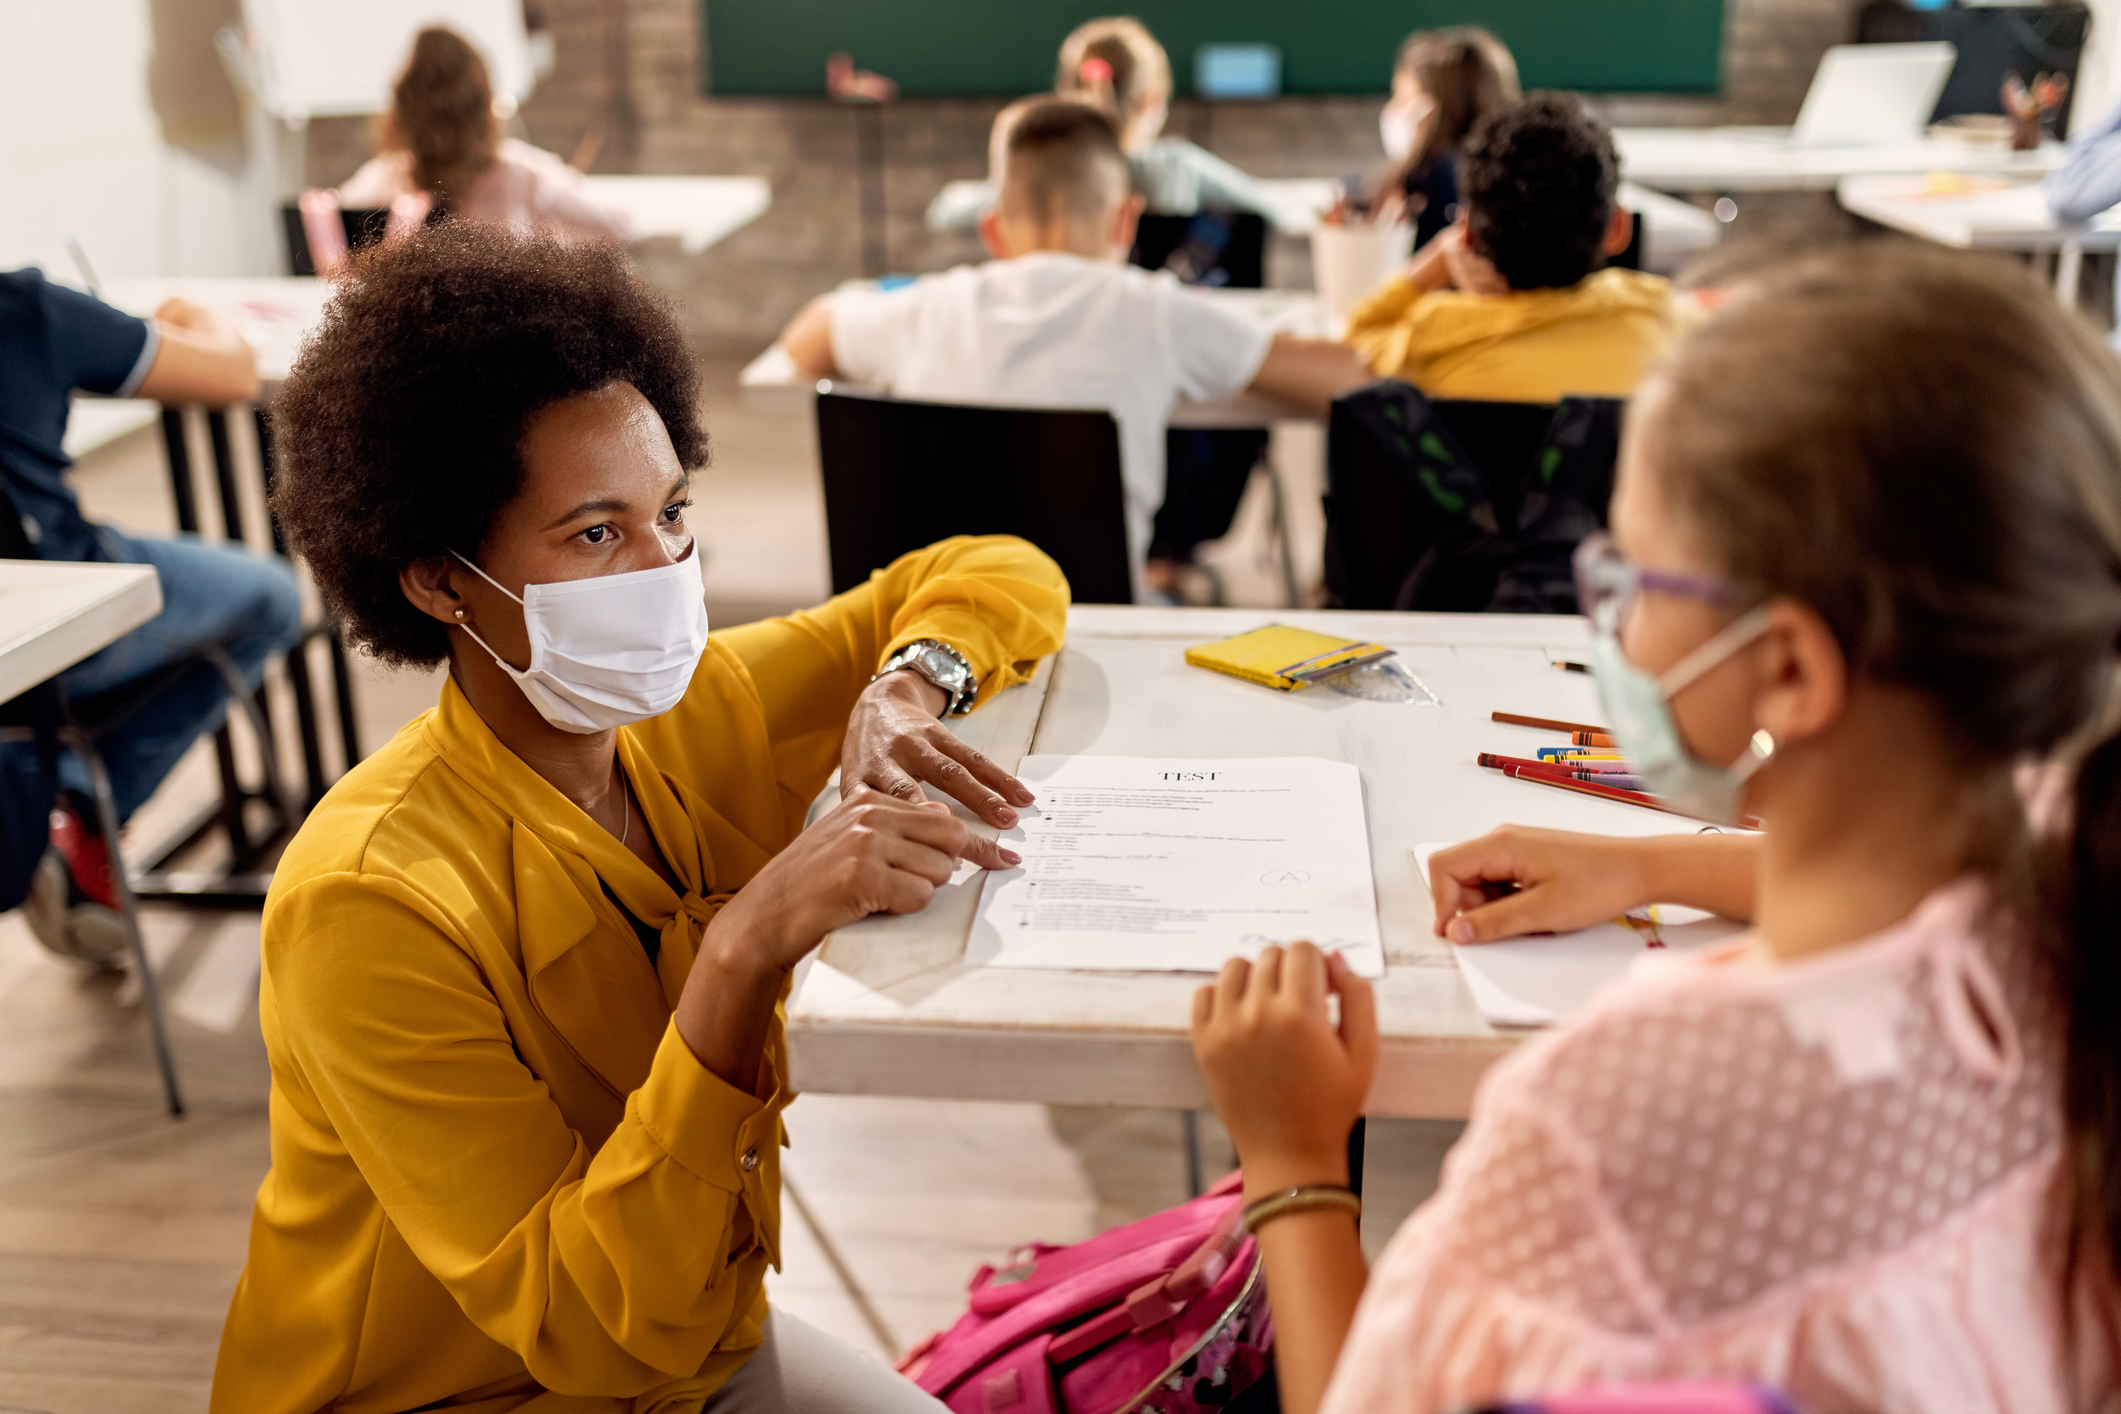 Black teacher with a face mask explaining exam results to elementary student in the classroom